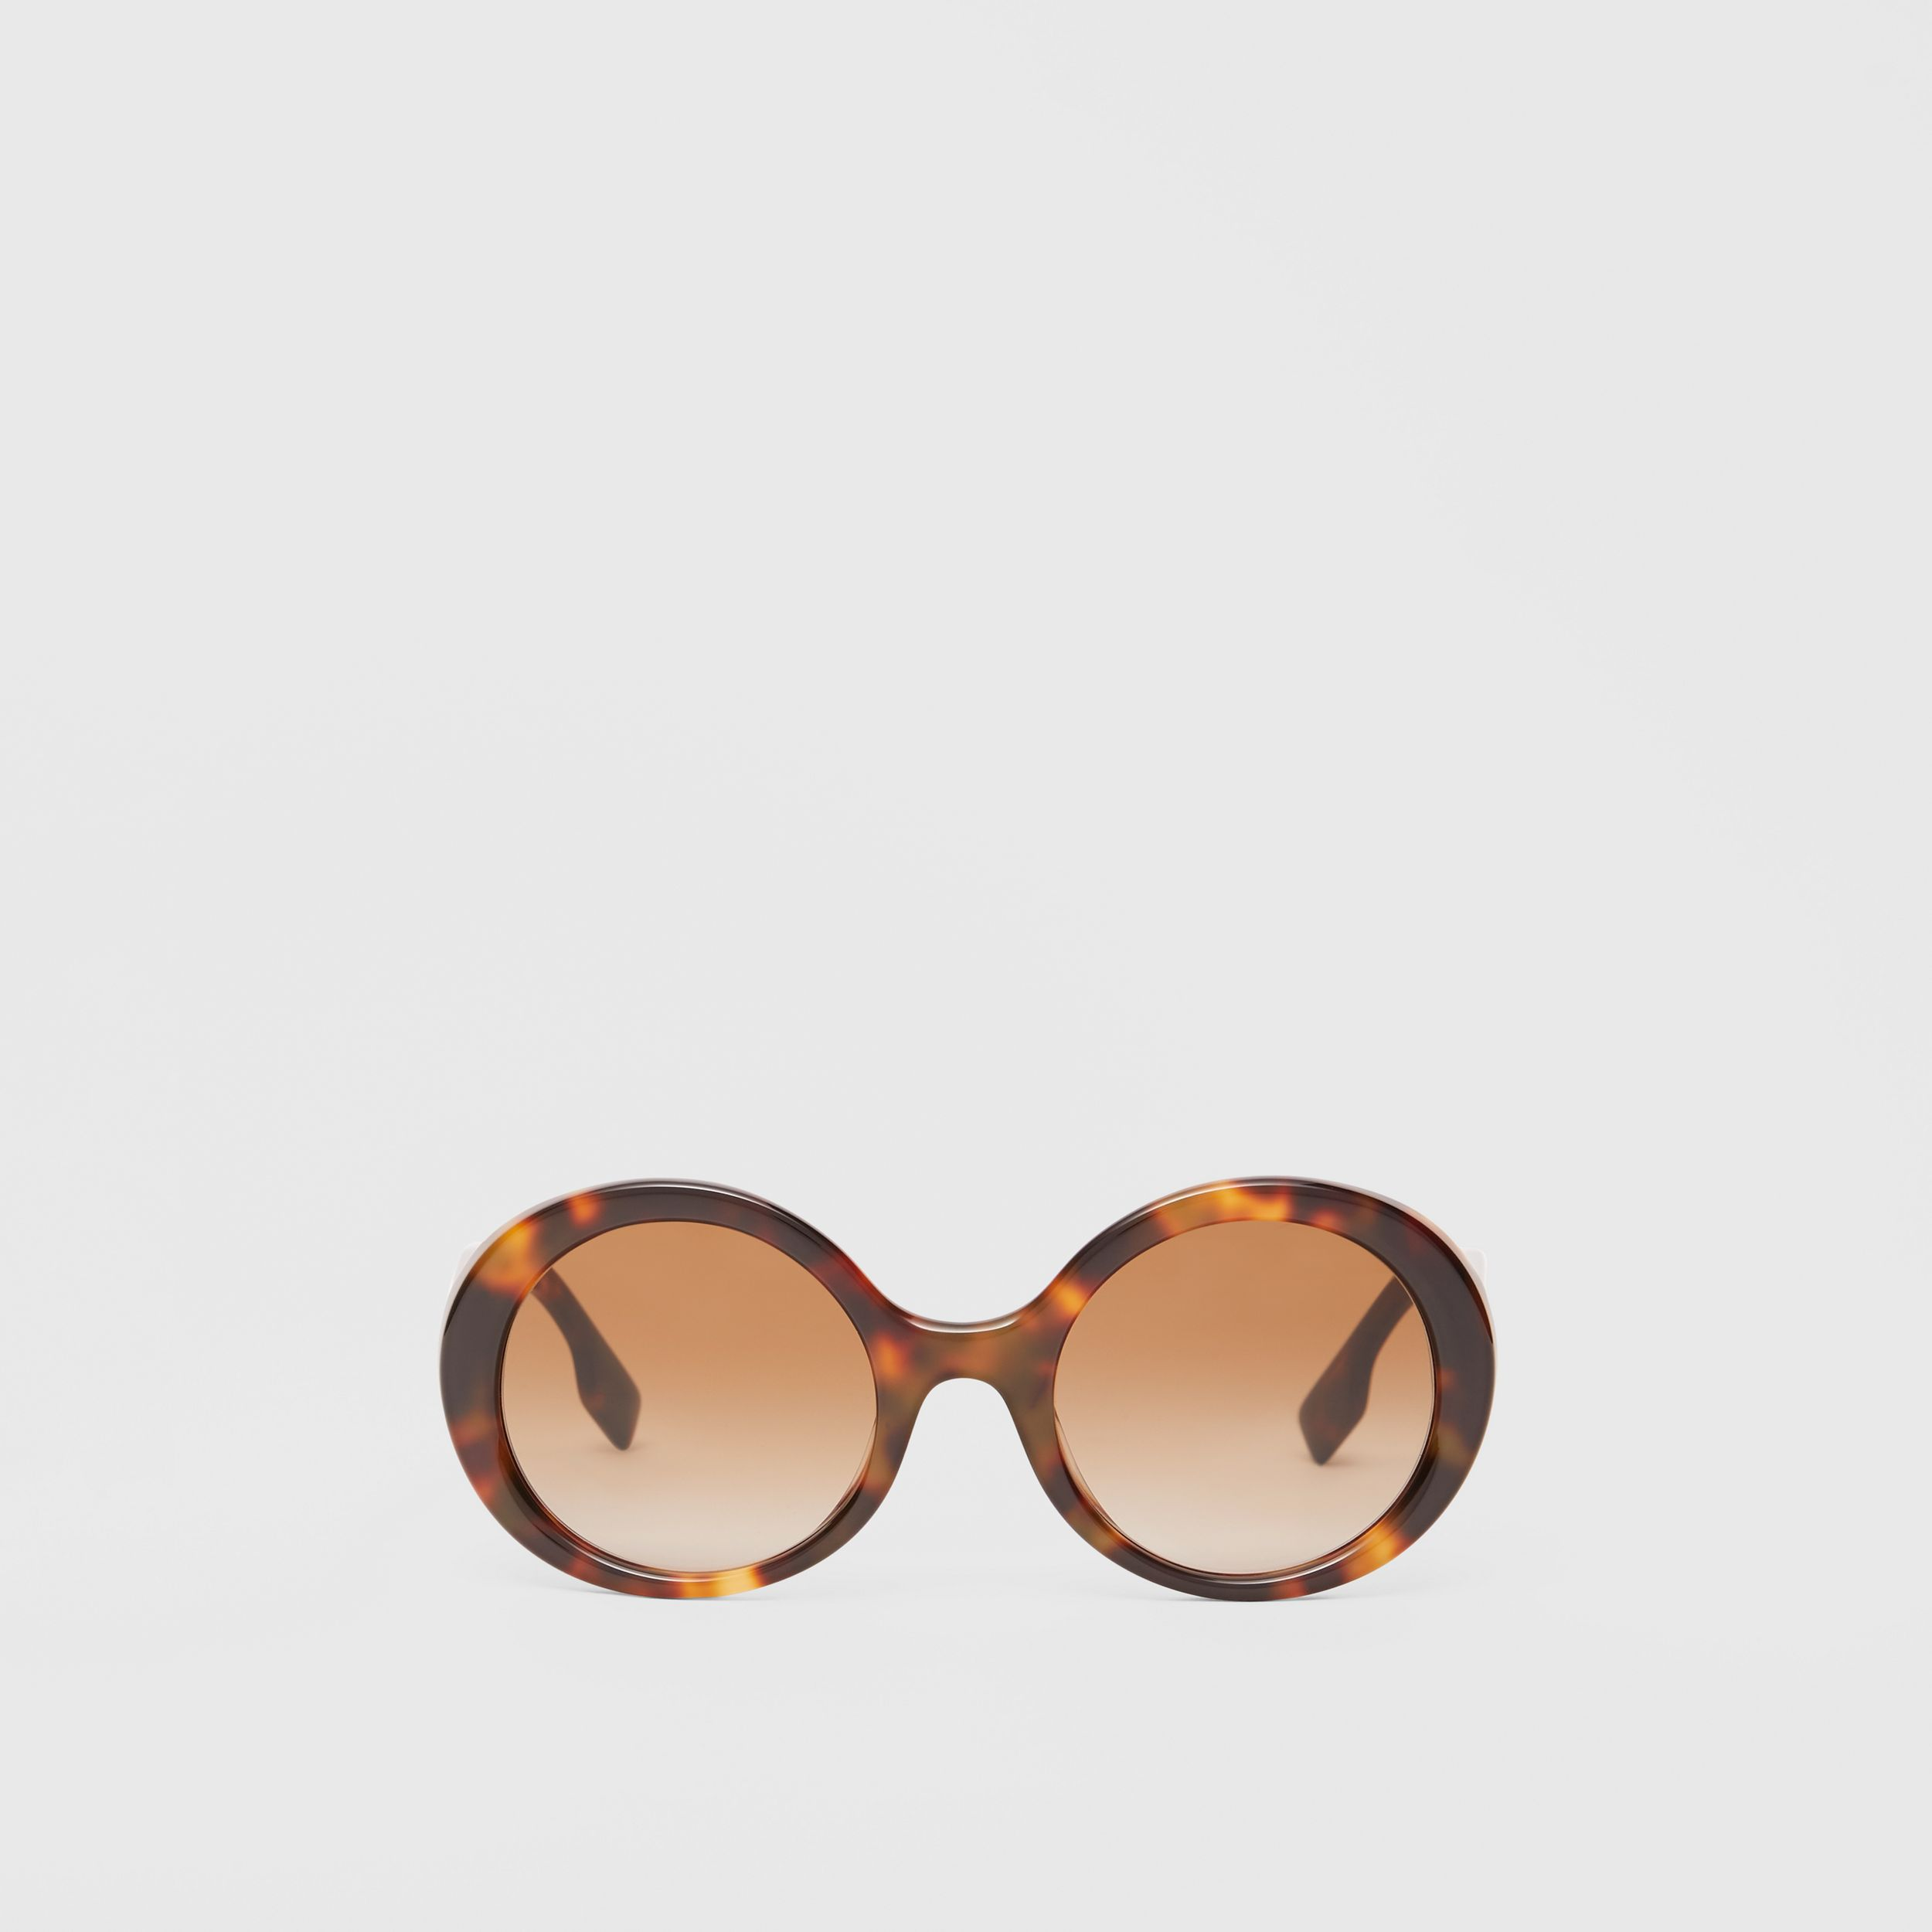 Oversized Round Frame Sunglasses in Dark Tortoise Amber - Women | Burberry - 1